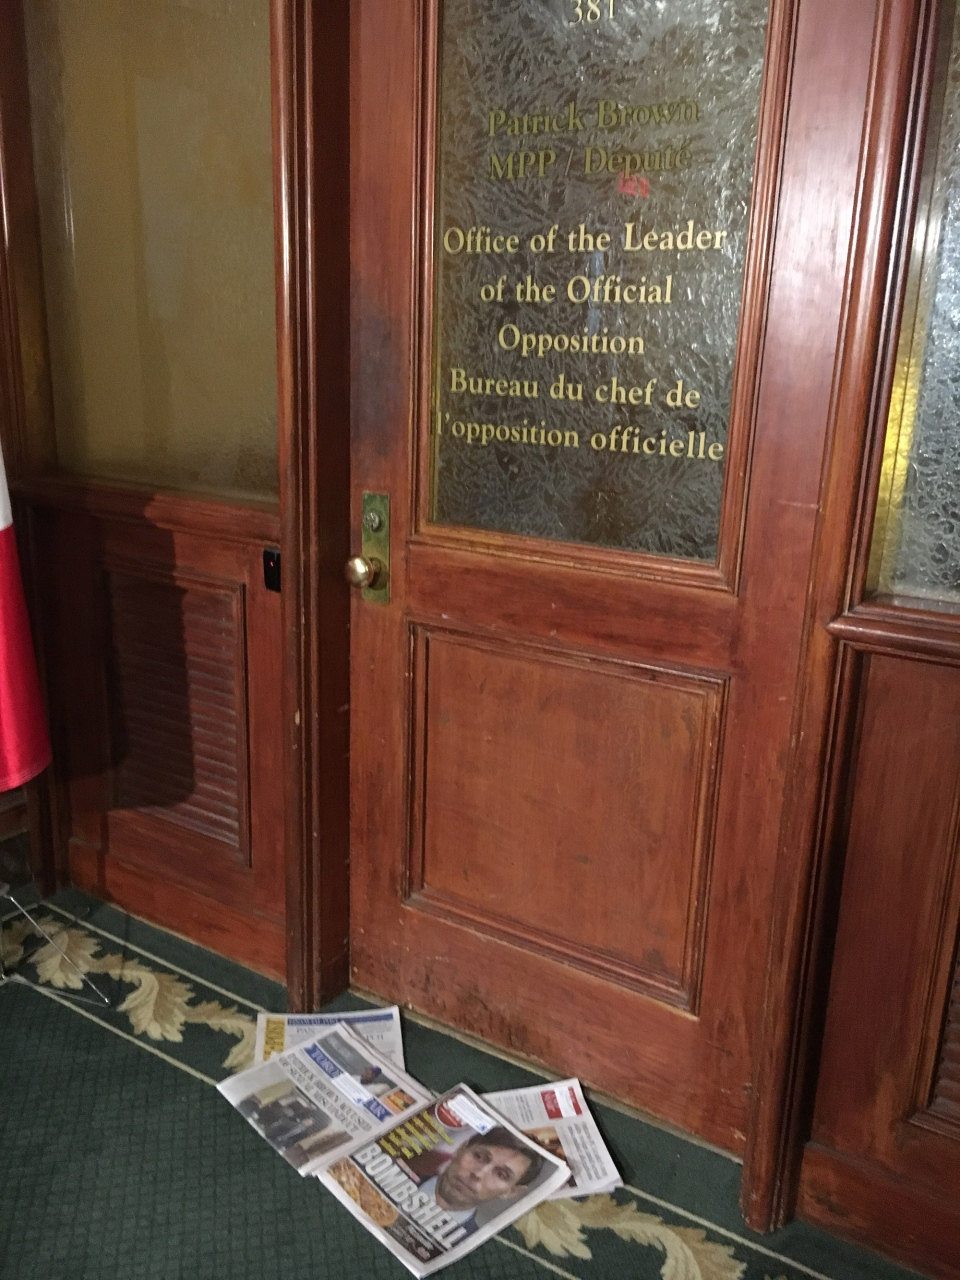 Newspapers sit outside the Office of the Leader of the Official Opposition, the morning after Patrick Brown resigned as Ontario PC Party leader, Thursday, Jan. 25, 2018.